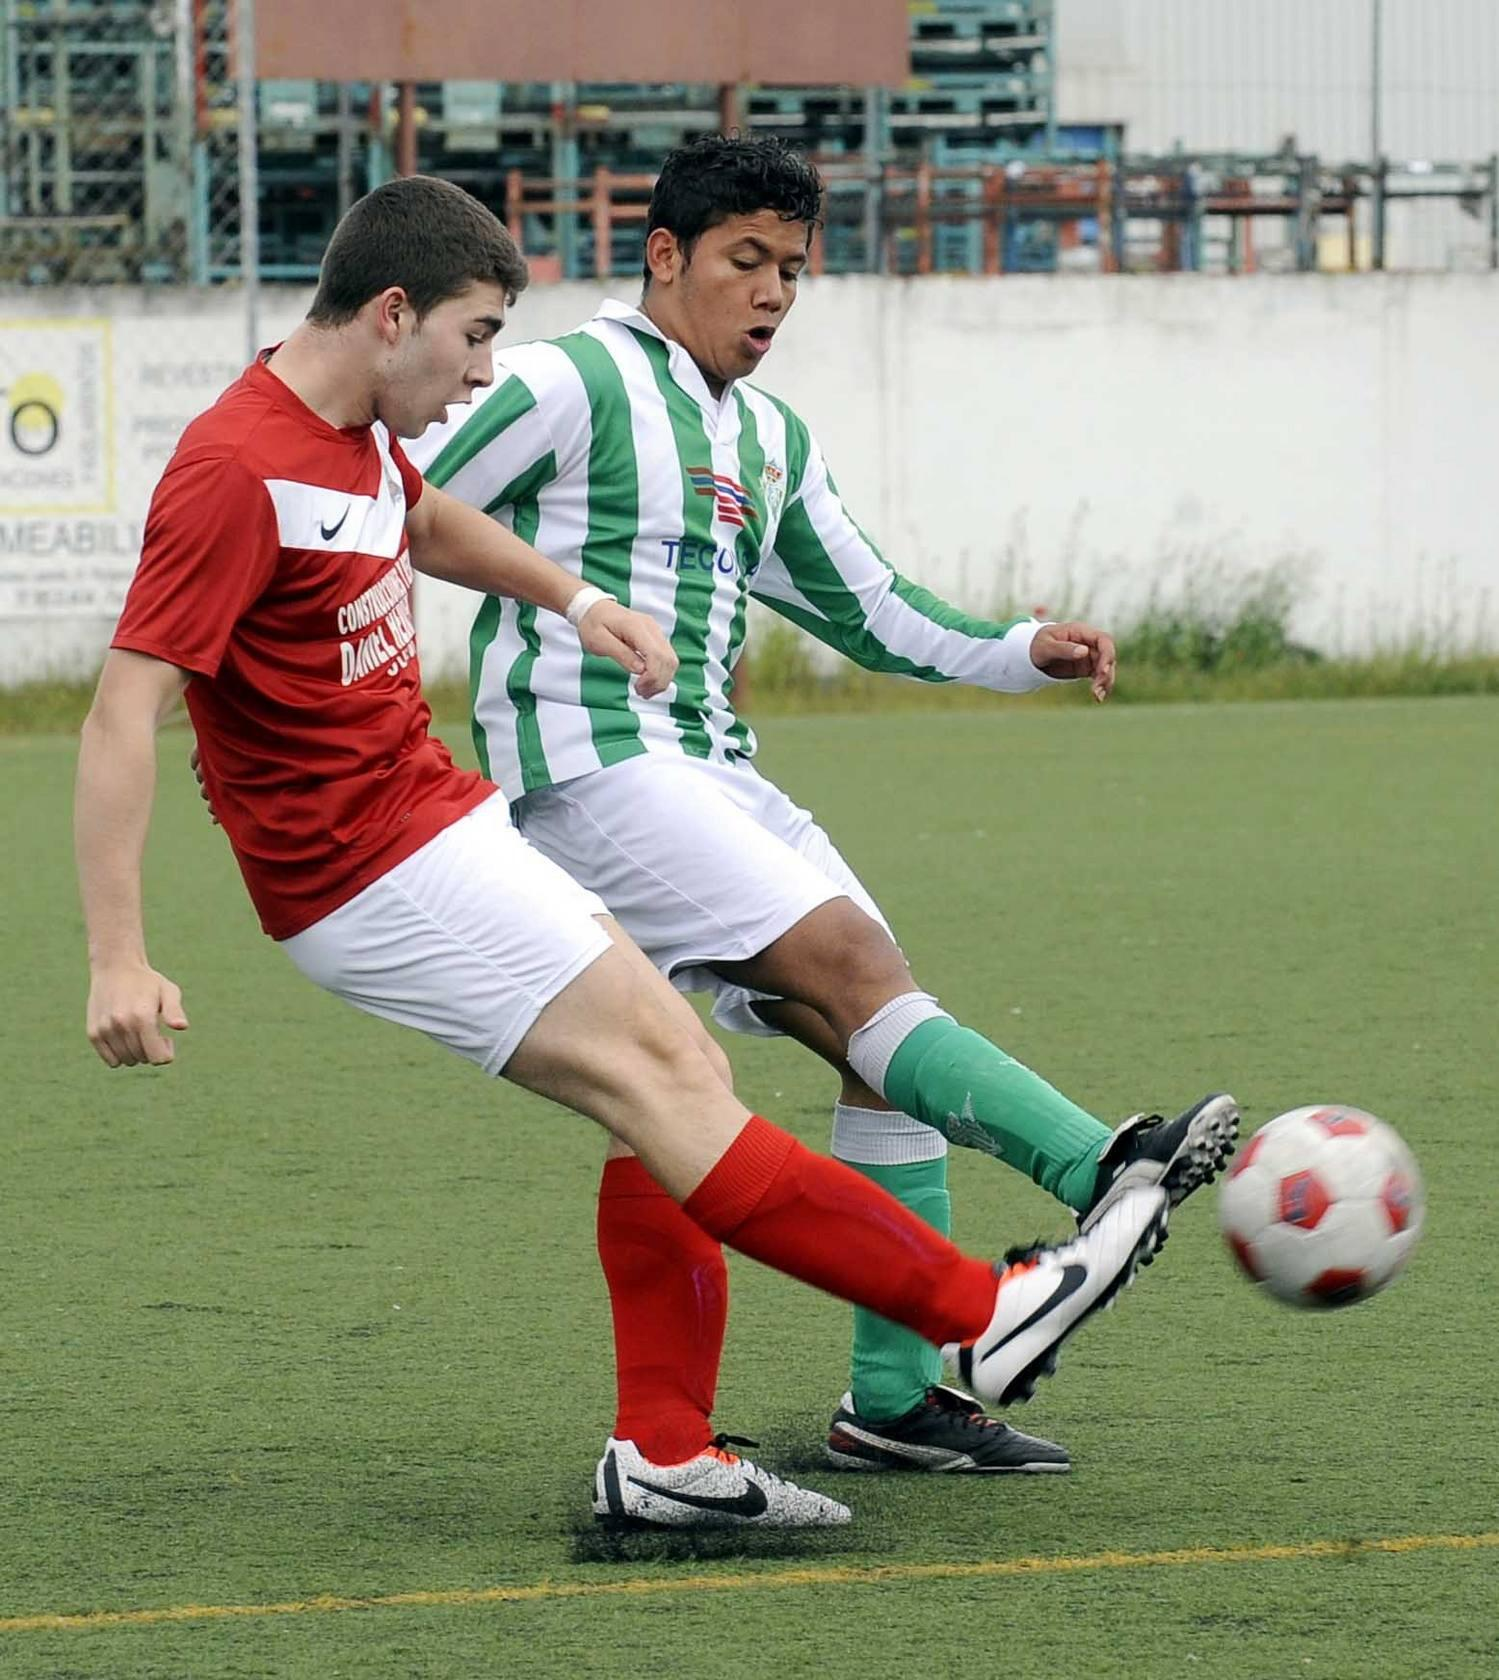 Deporte Base Valladolid